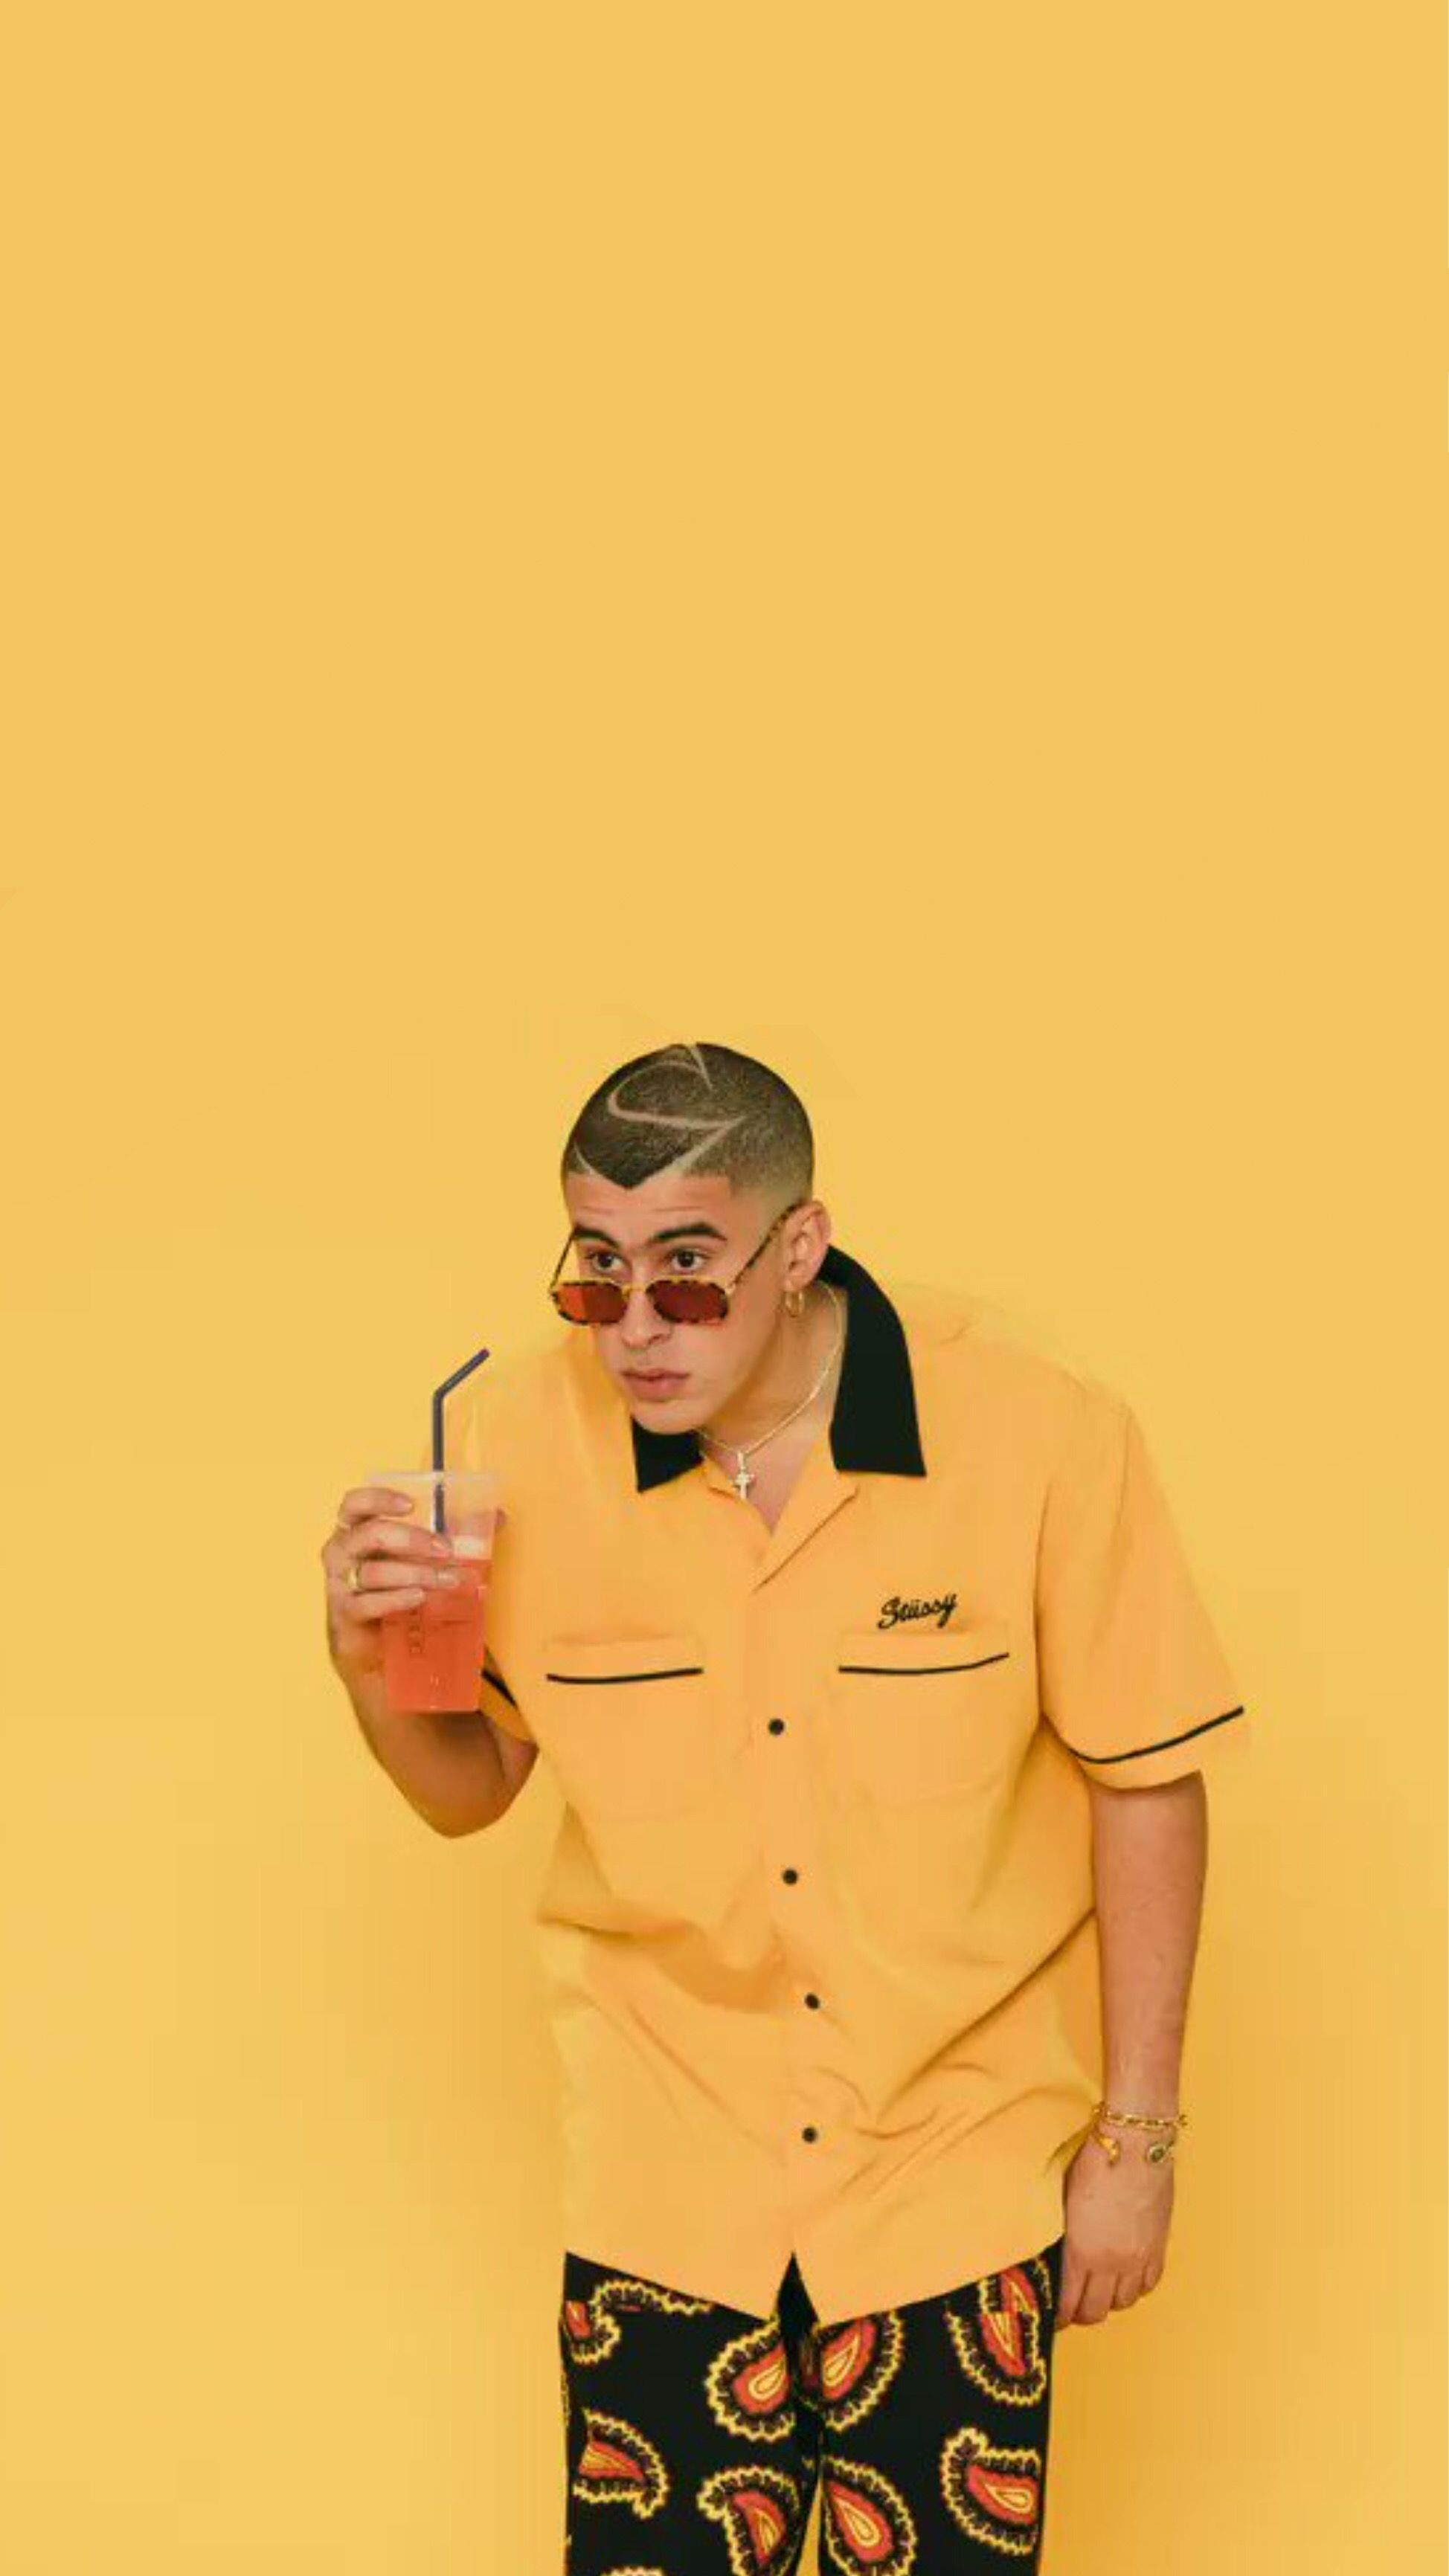 Bad Buny Bbecito Hermoso Fotos De Bad Bunny Imagenes De Bad